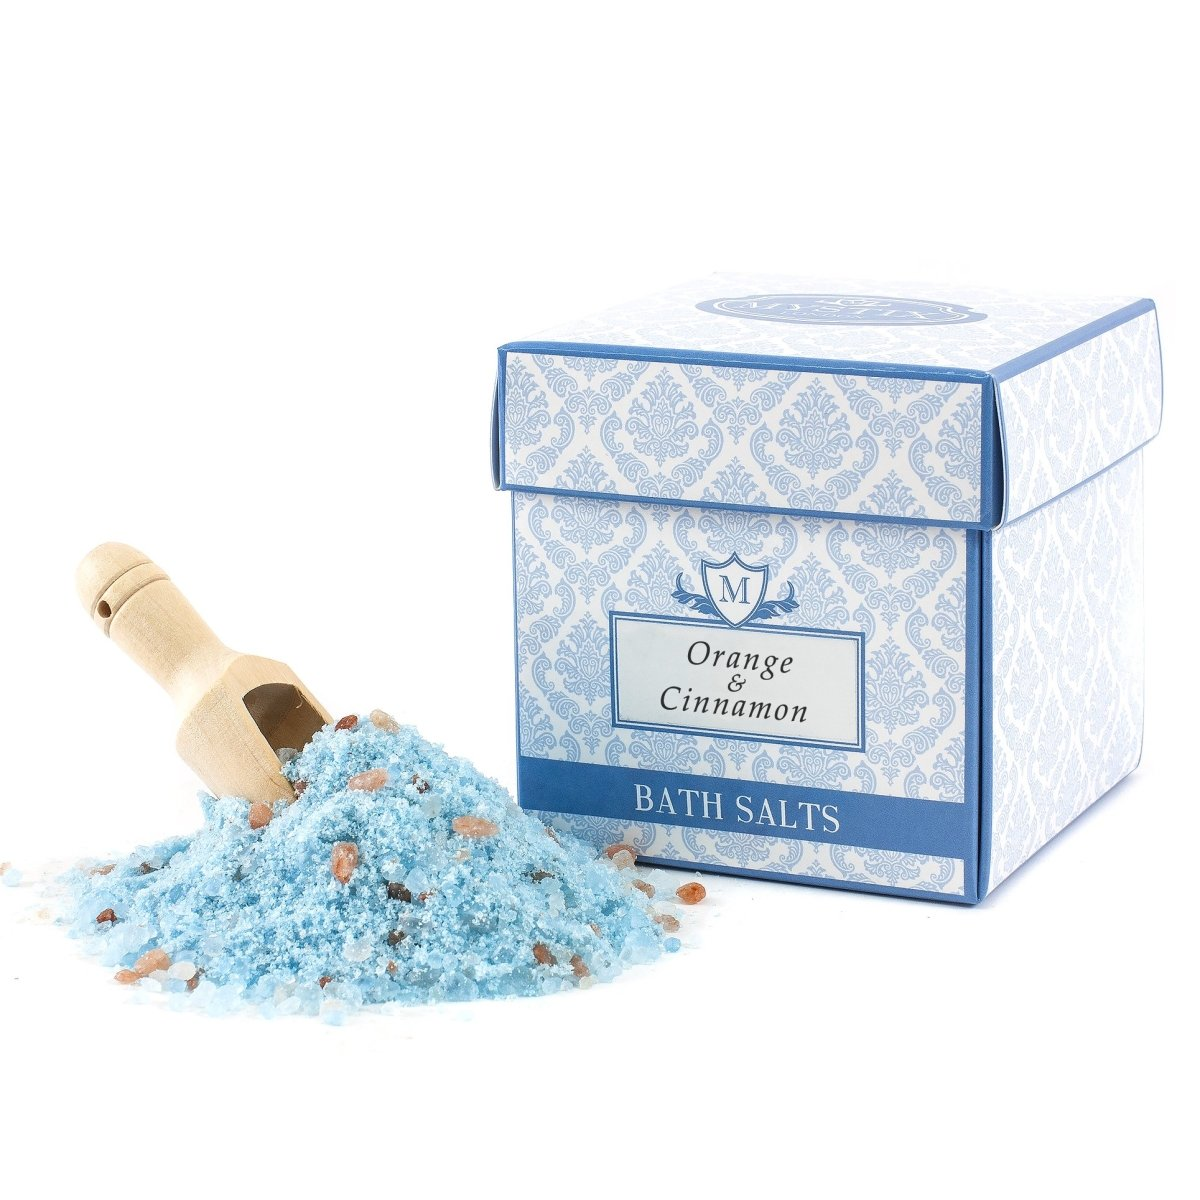 Orange & Cinnamon Scented Bath Salt 350g - Mystic Moments UK